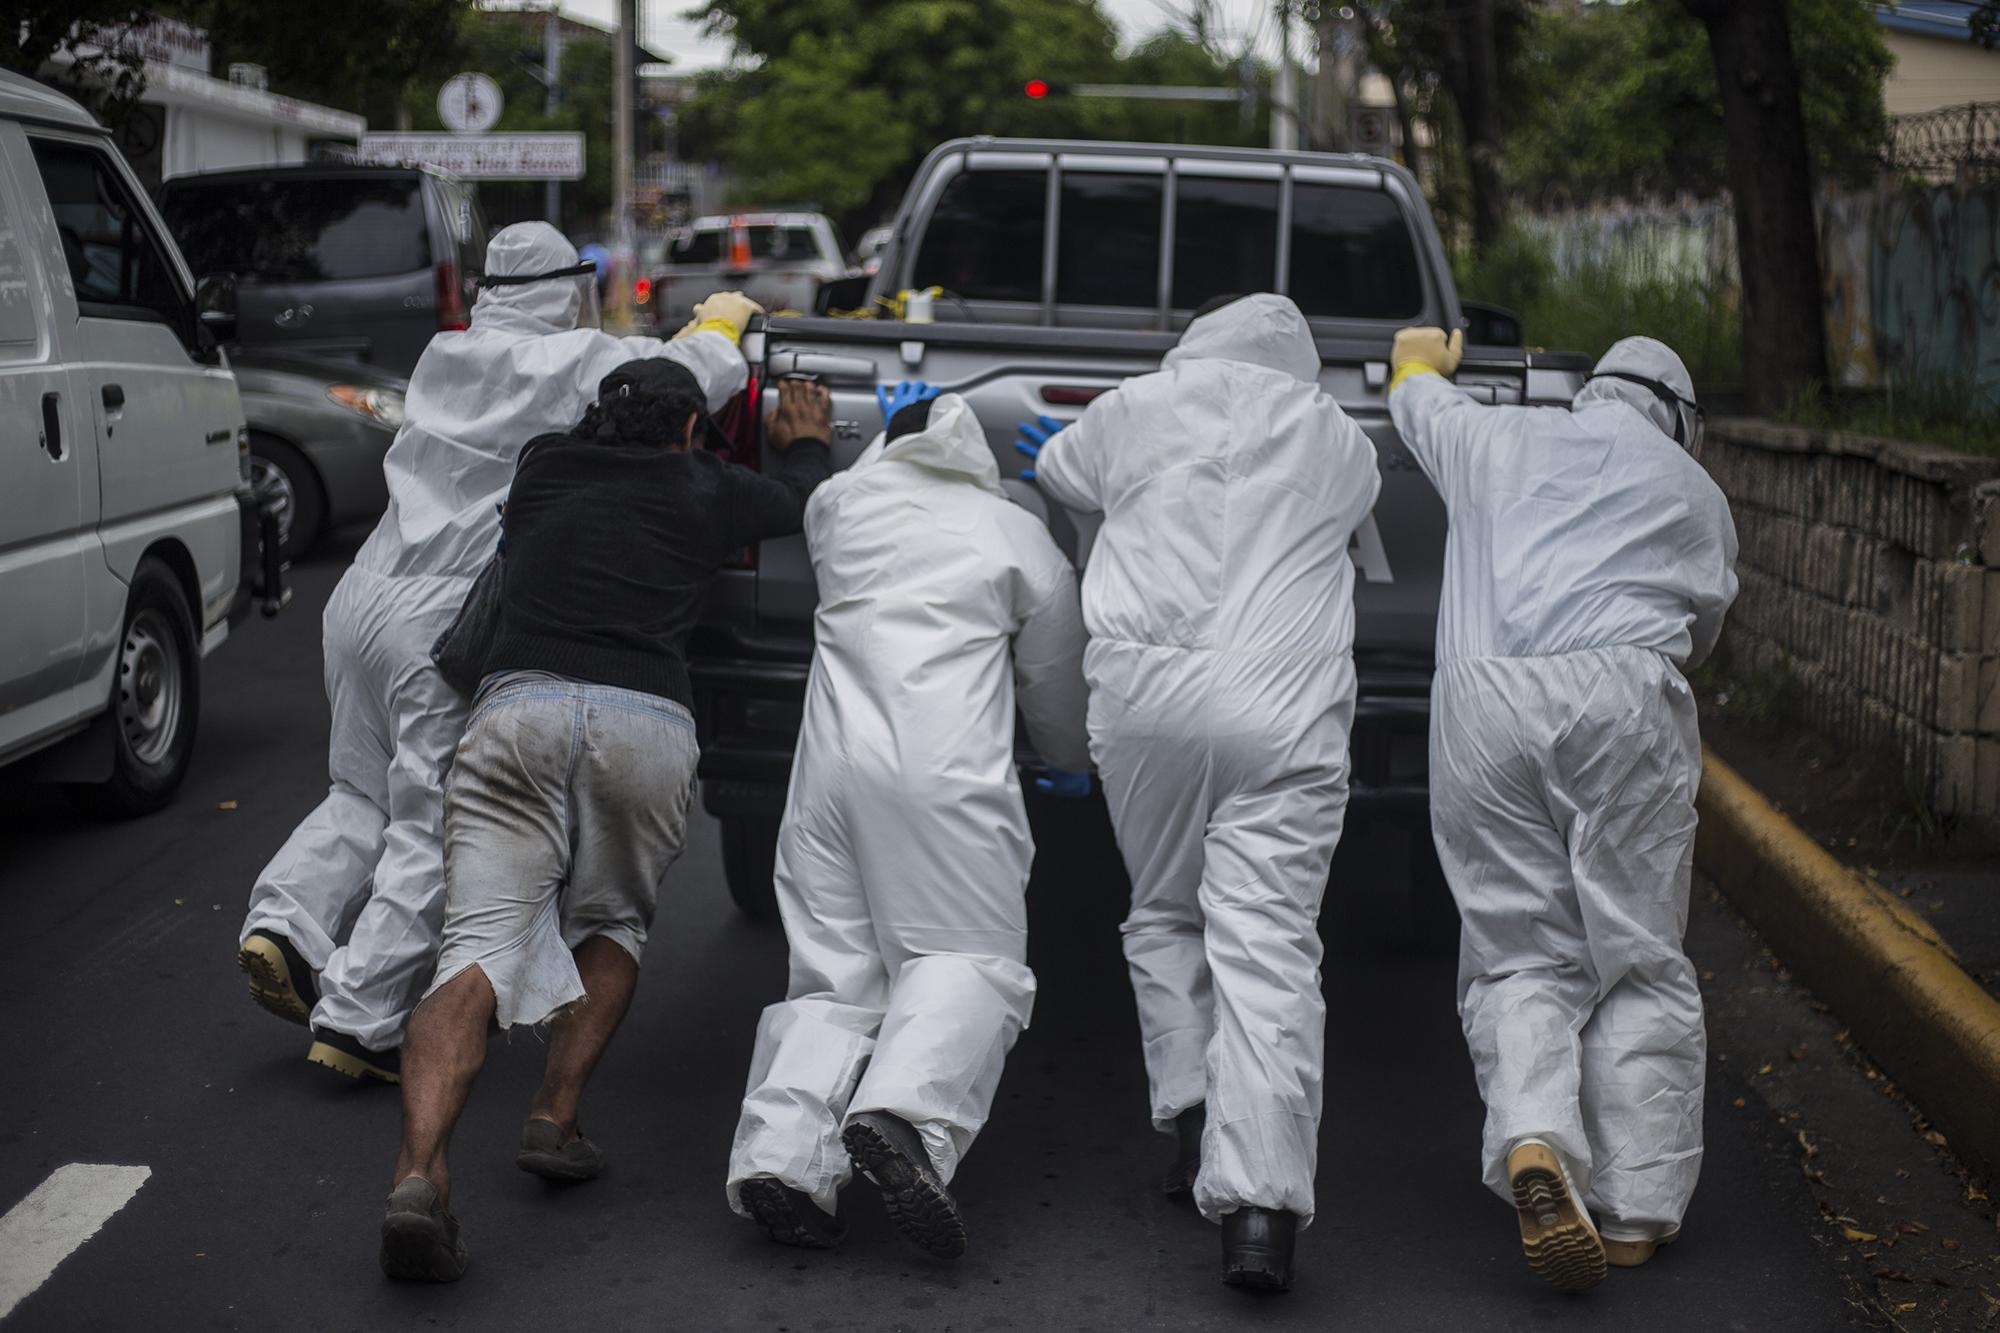 "From 9 am to 3:30 pm every day, cars from funeral homes line up outside the Rosales Hospital in San Salvador to collect the bodies of confirmed or suspected victims of covid-19. ""Once we found 35 victims at the morgue. We sent out 18. The next day I arrived at 6 in the morning and we found another 35 bodies,"" recounts a police officer standing guard outside the hospital. Above, a group of funeral workers tries to jump start a car that caused a bottleneck outside the entrance of the morgue."